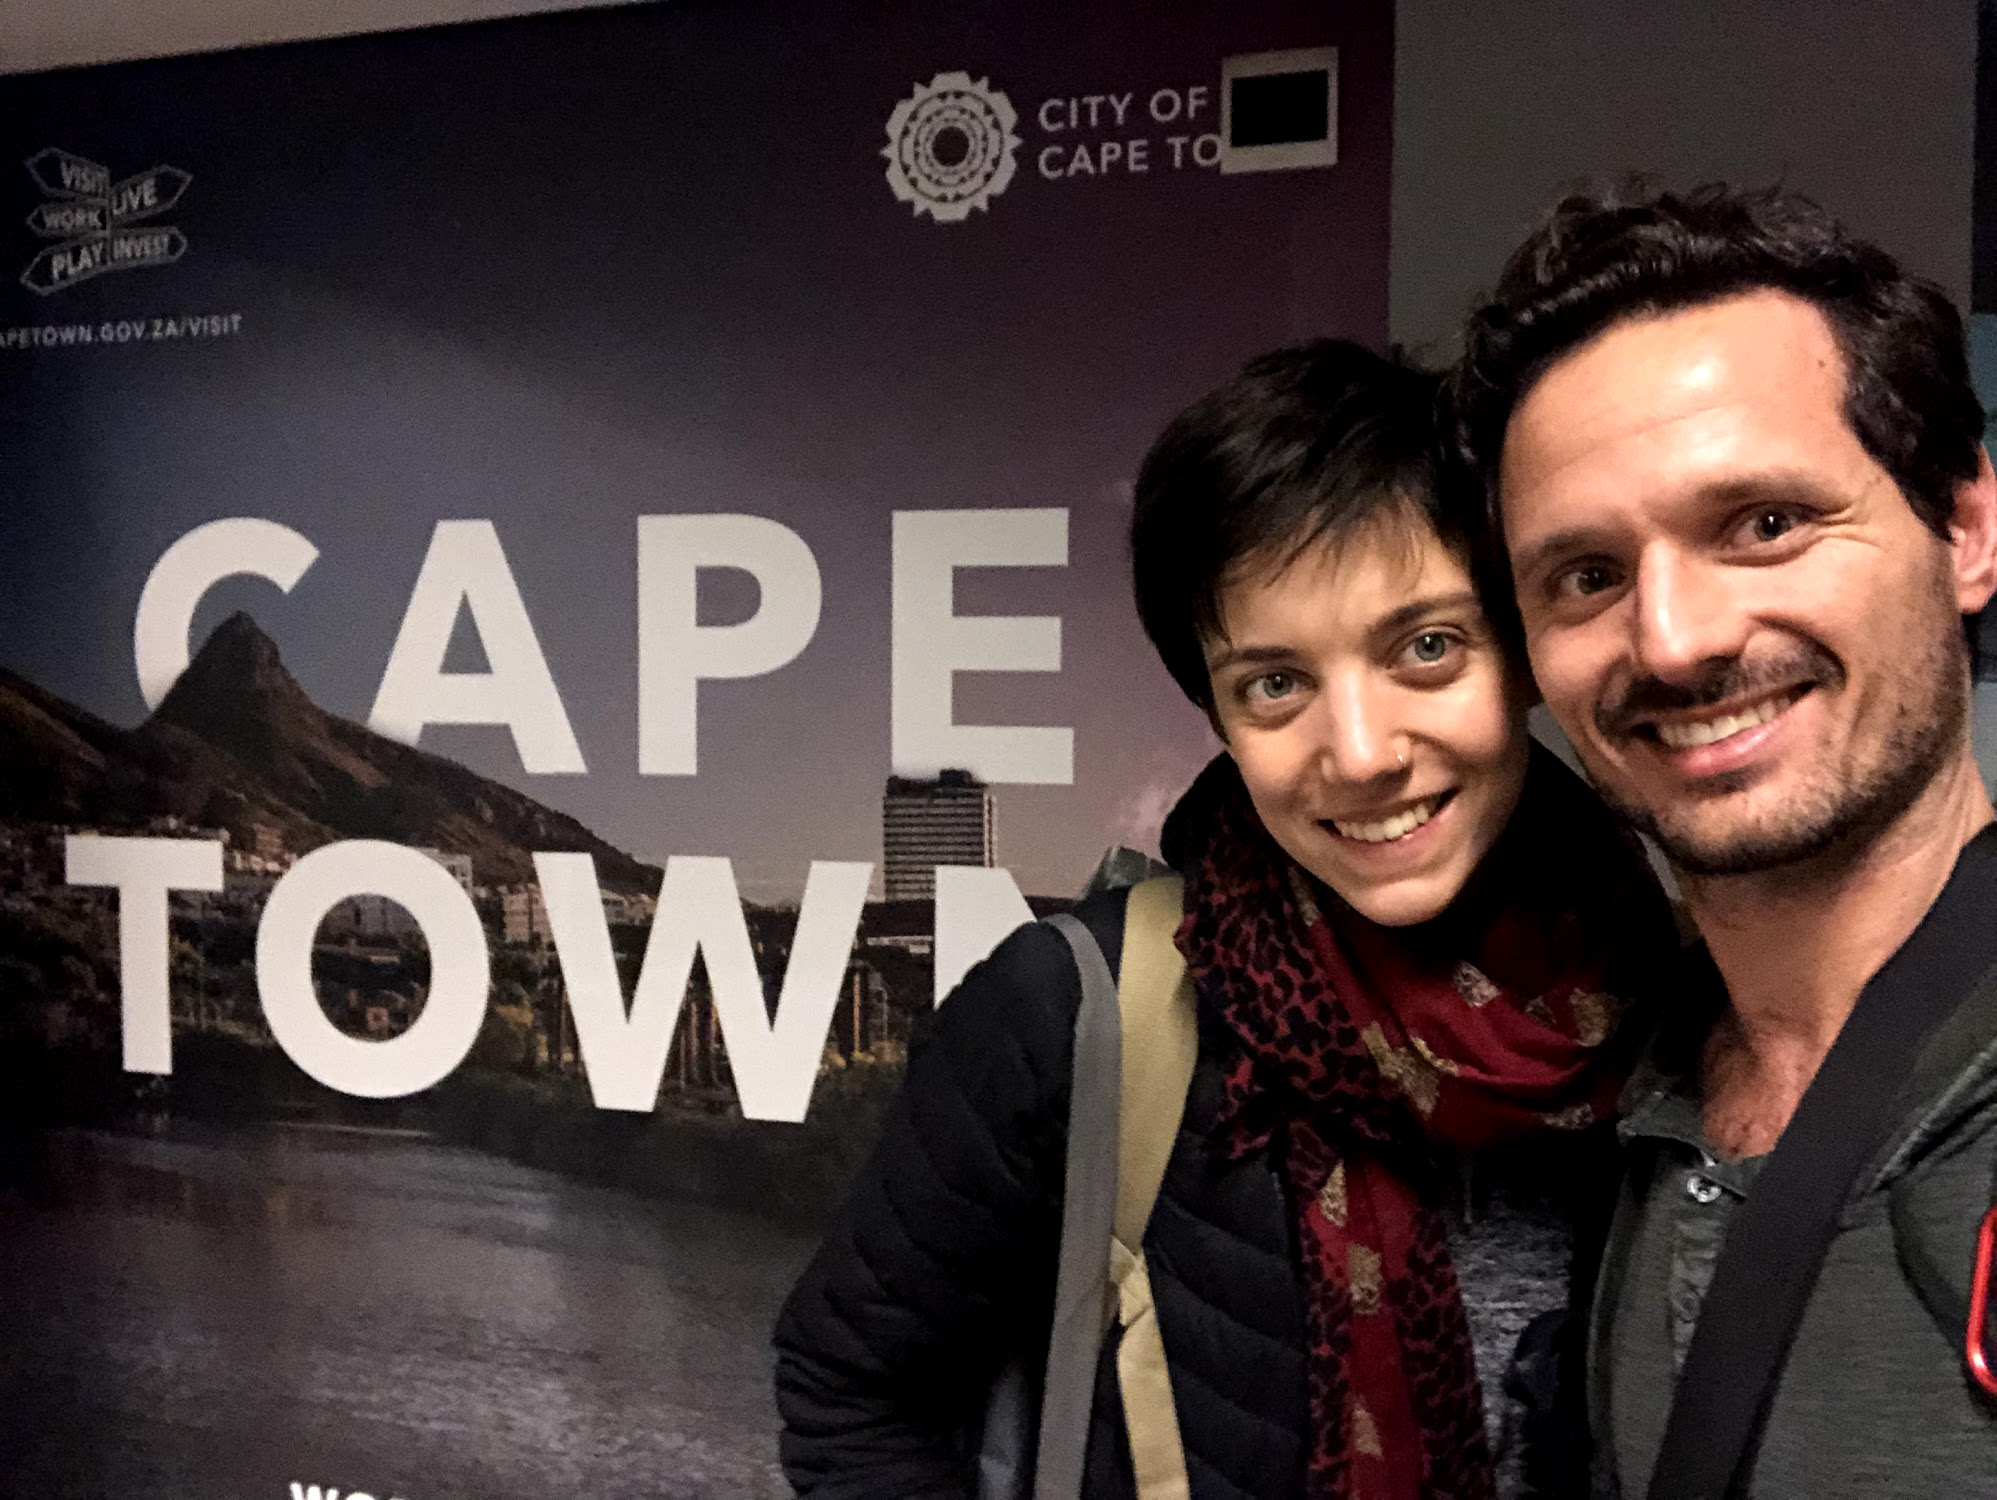 Our arrival at Cape Town airport on January 10th. Happy and excited!